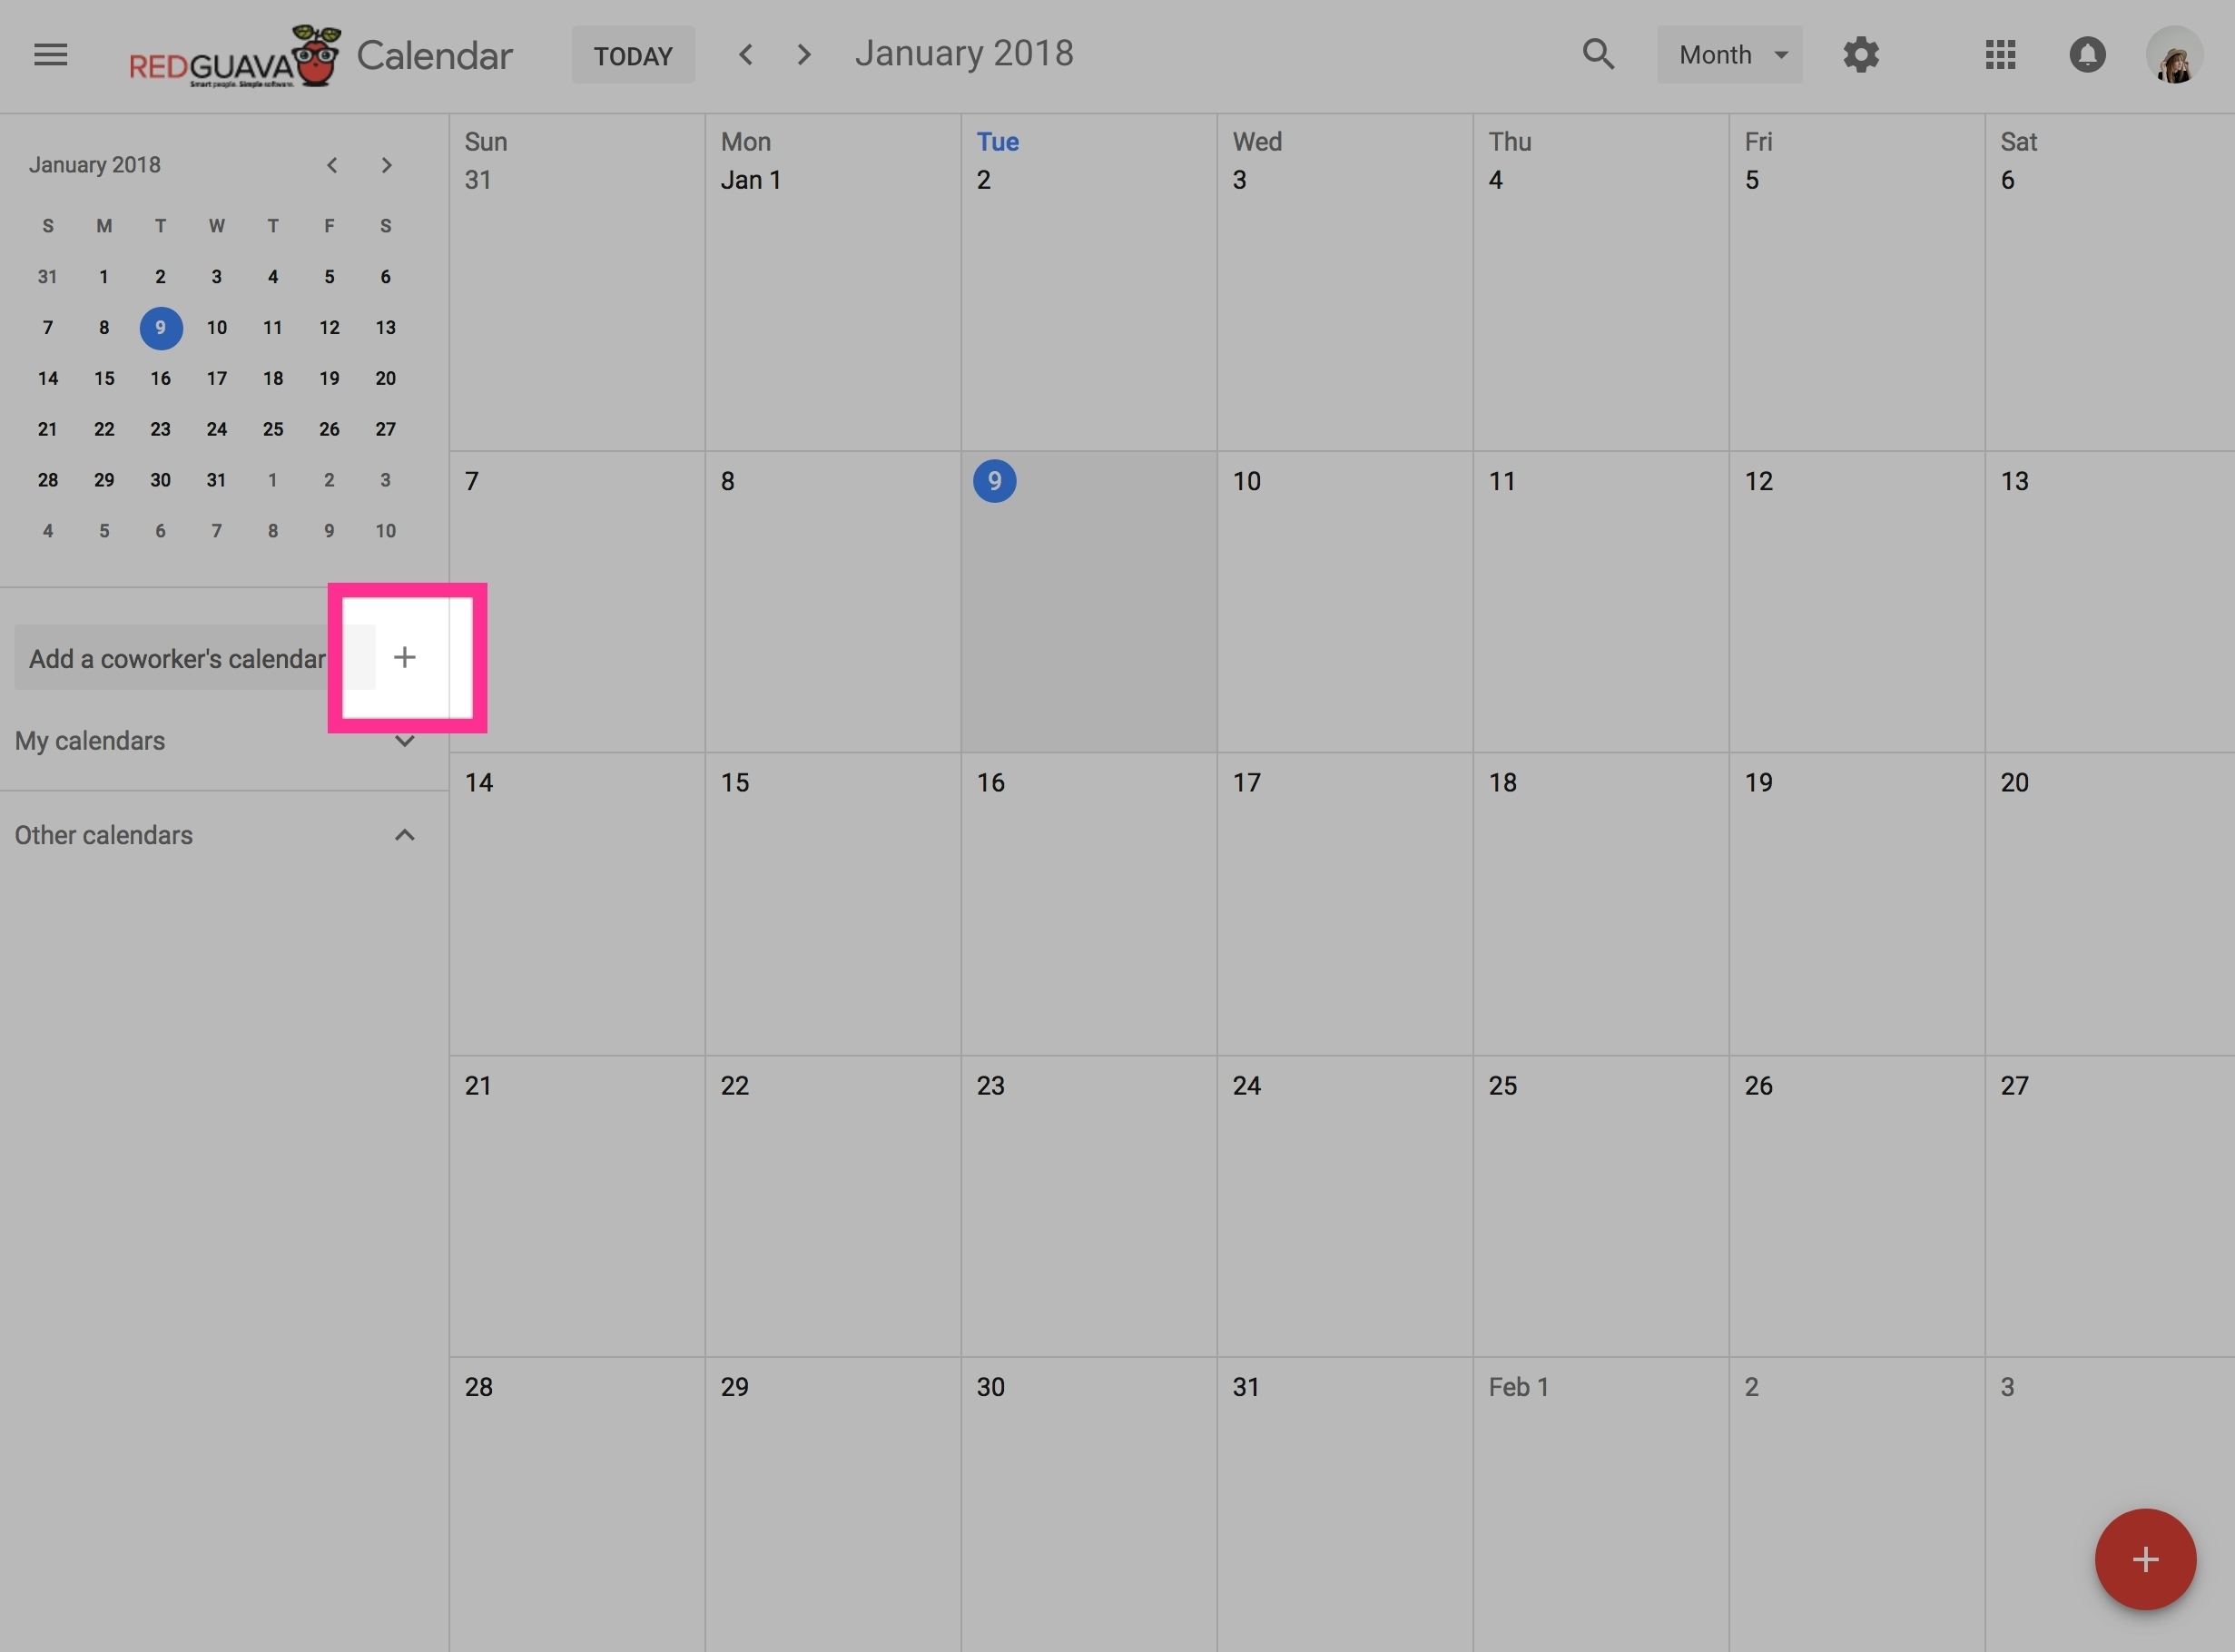 30 Day Calendar With Circle With A Line Thru It   Template Calendar inside 30 Day Calendar With Circle With A Line Thru It